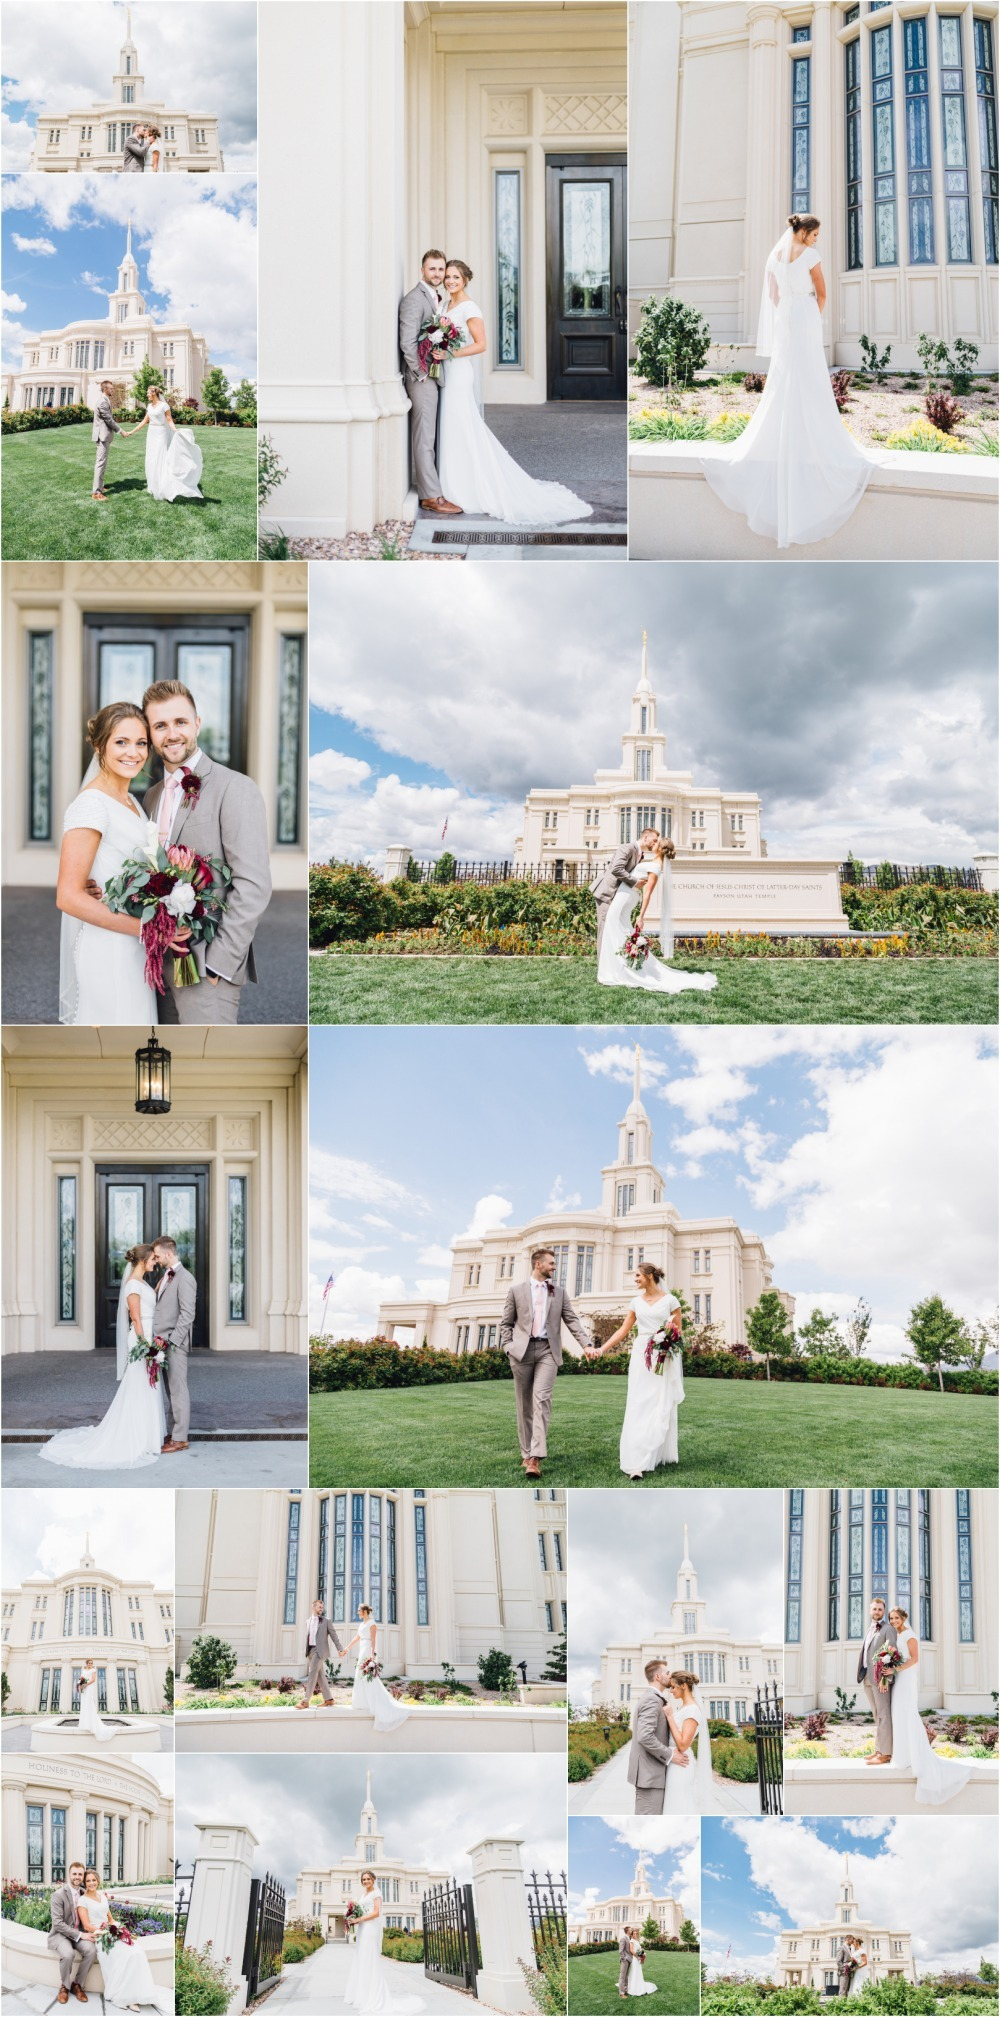 Affordable Wedding Photography.Affordable Wedding Photographer In Utah County Utah